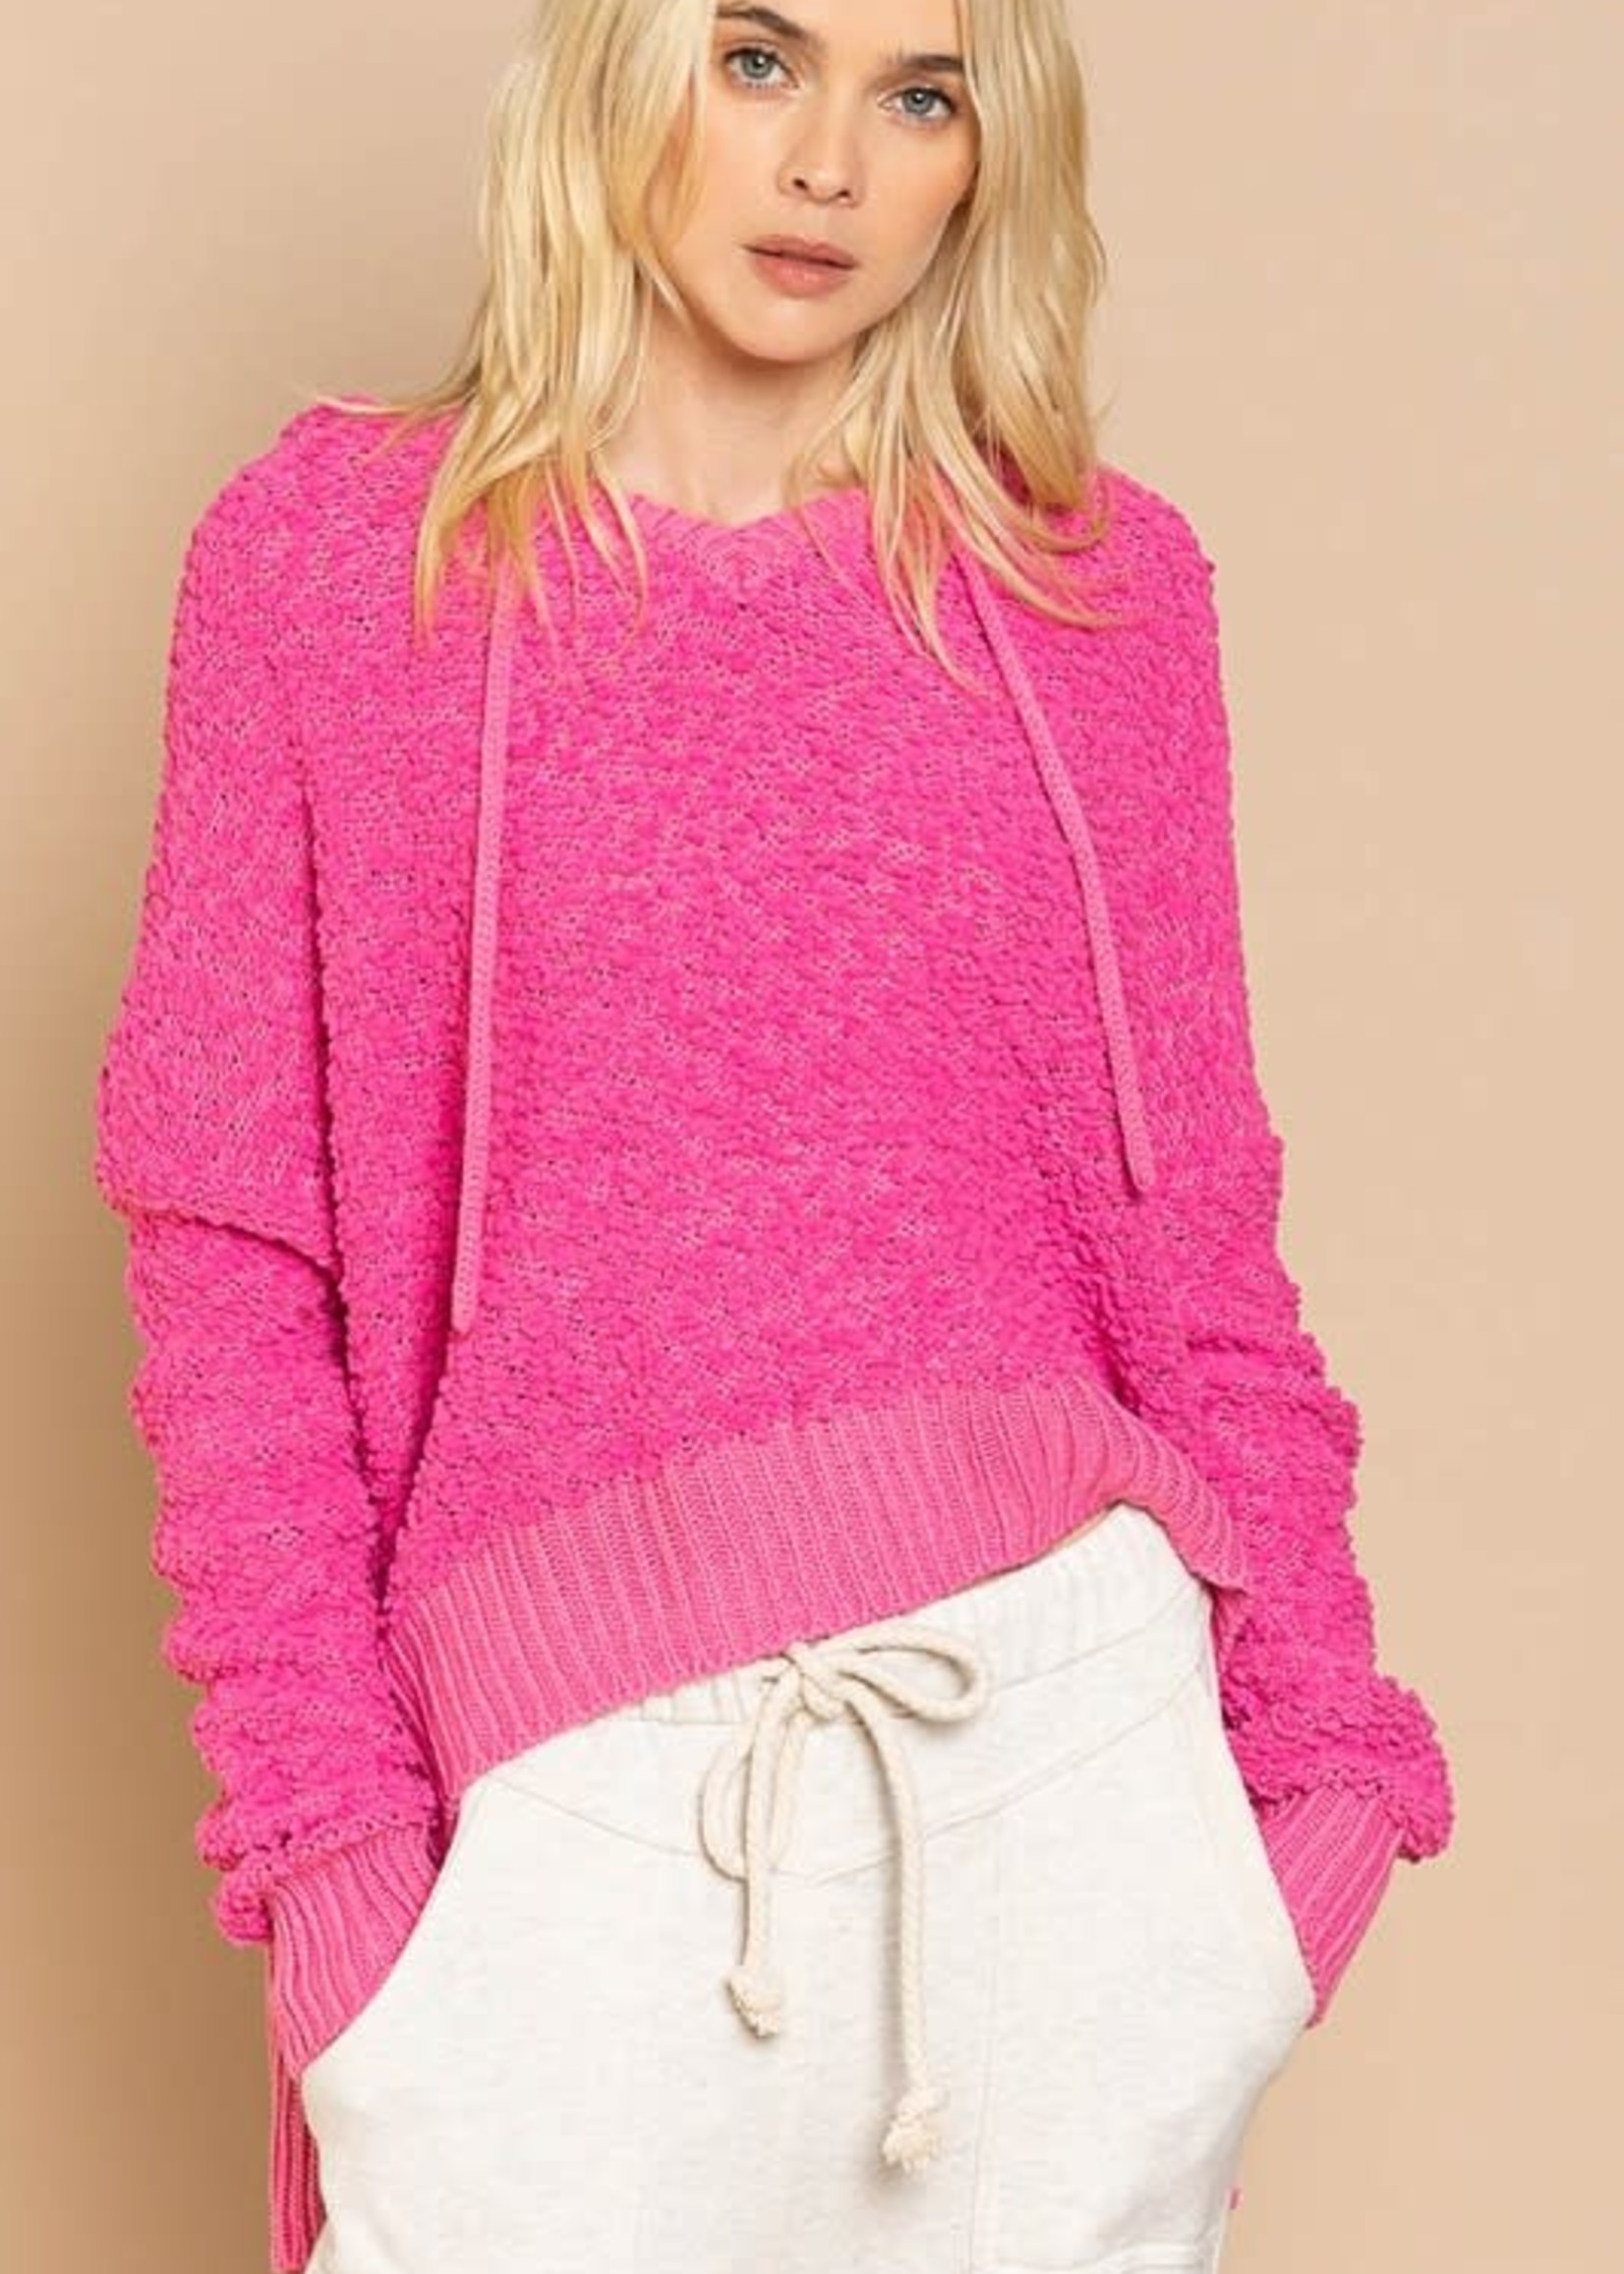 Popcorn Texture Hoodie , Hot Pink, Small